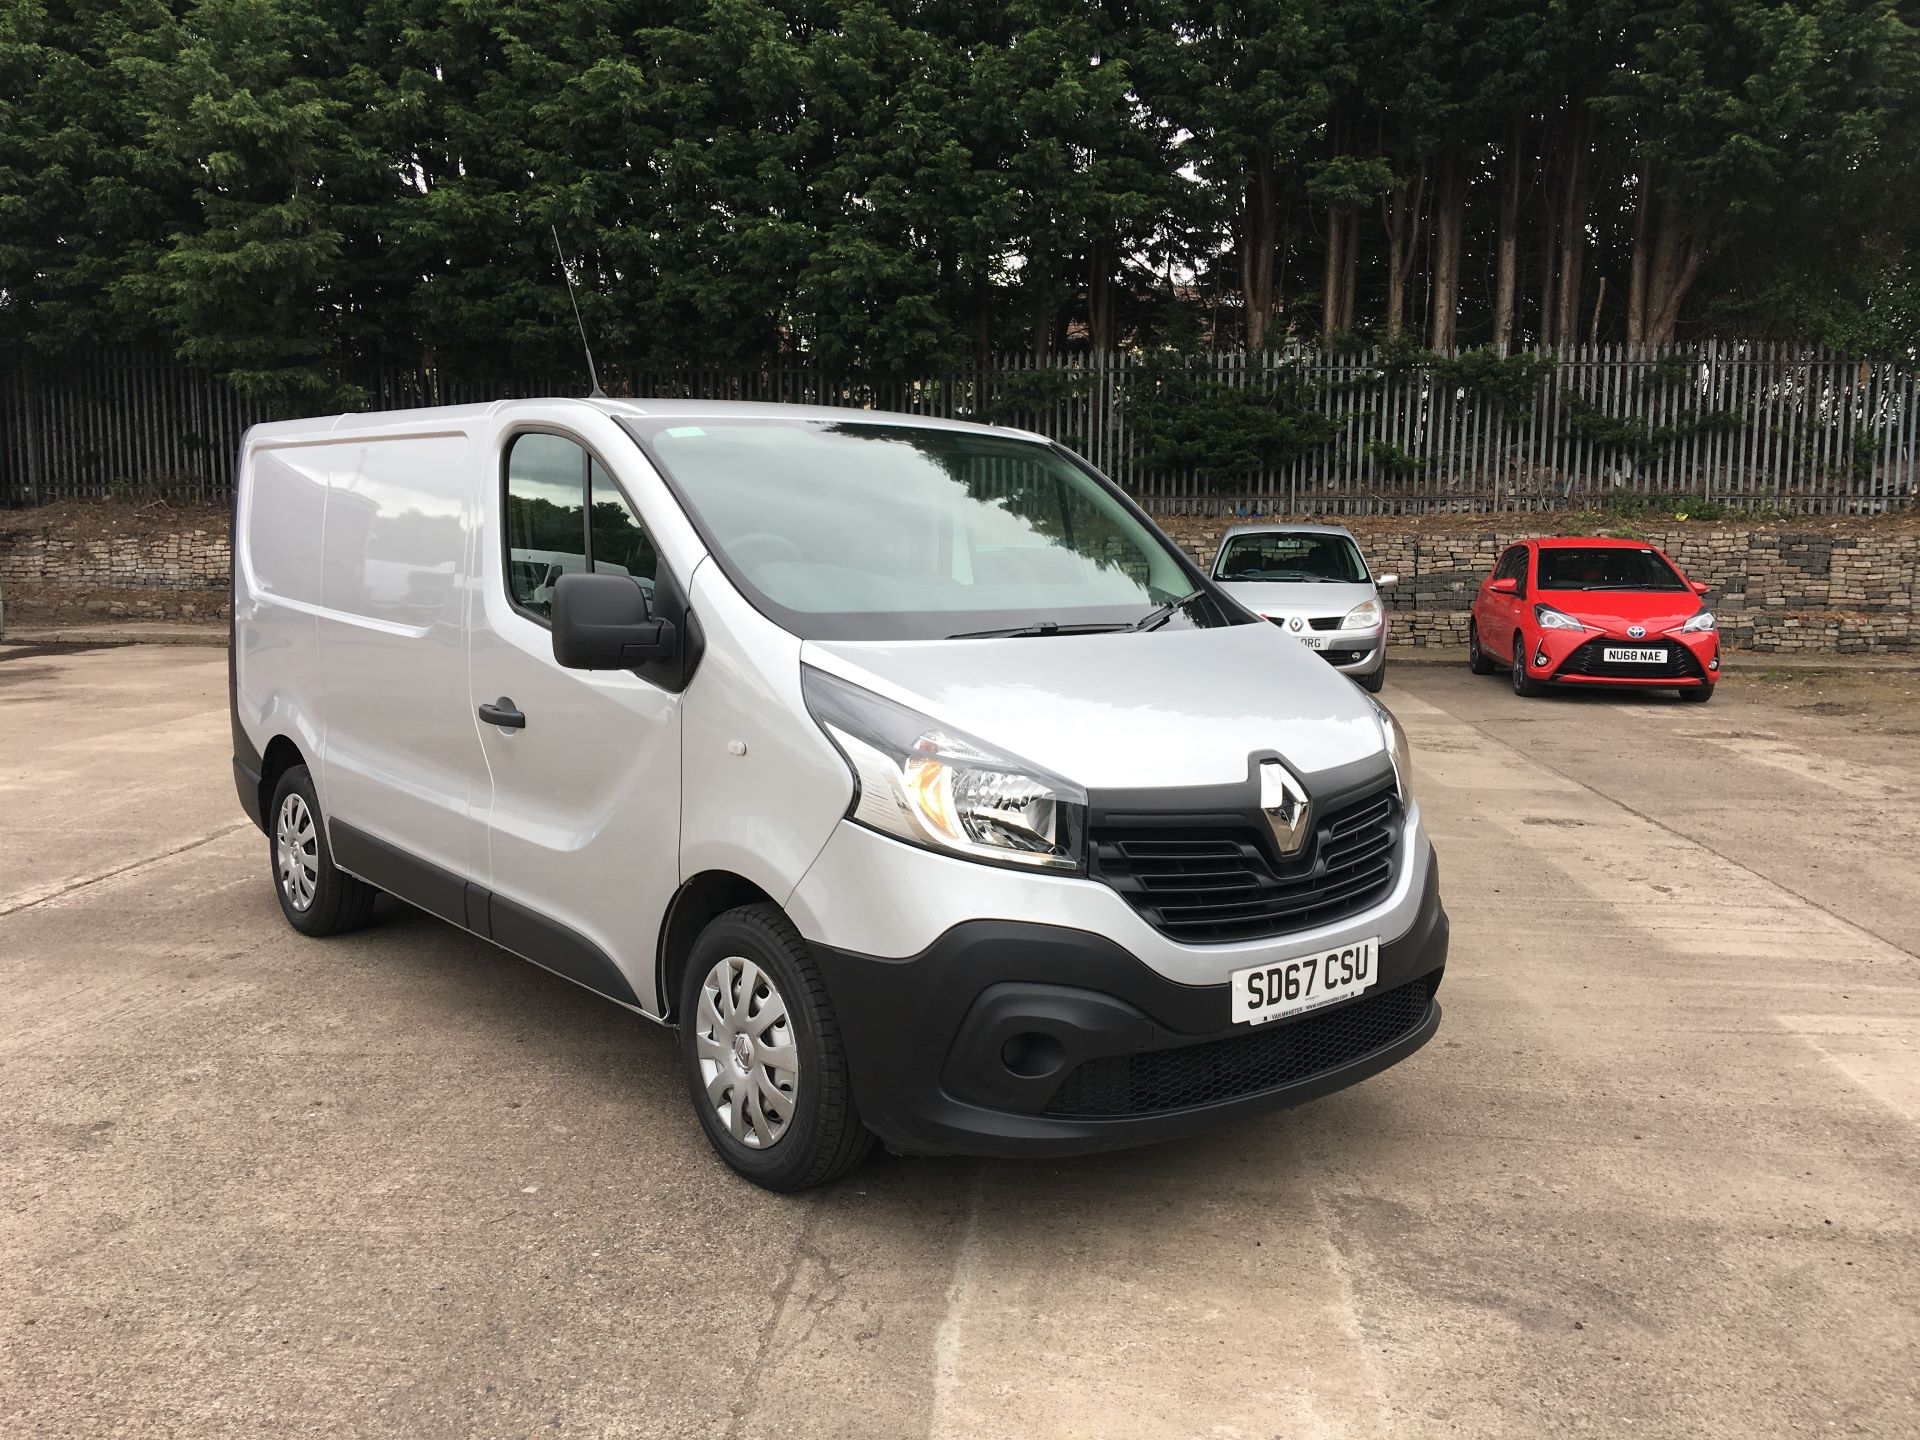 2017 Renault Trafic SL27 DCI 120PS BUSINESS VAN EURO 6 (SD67CSU) Thumbnail 1